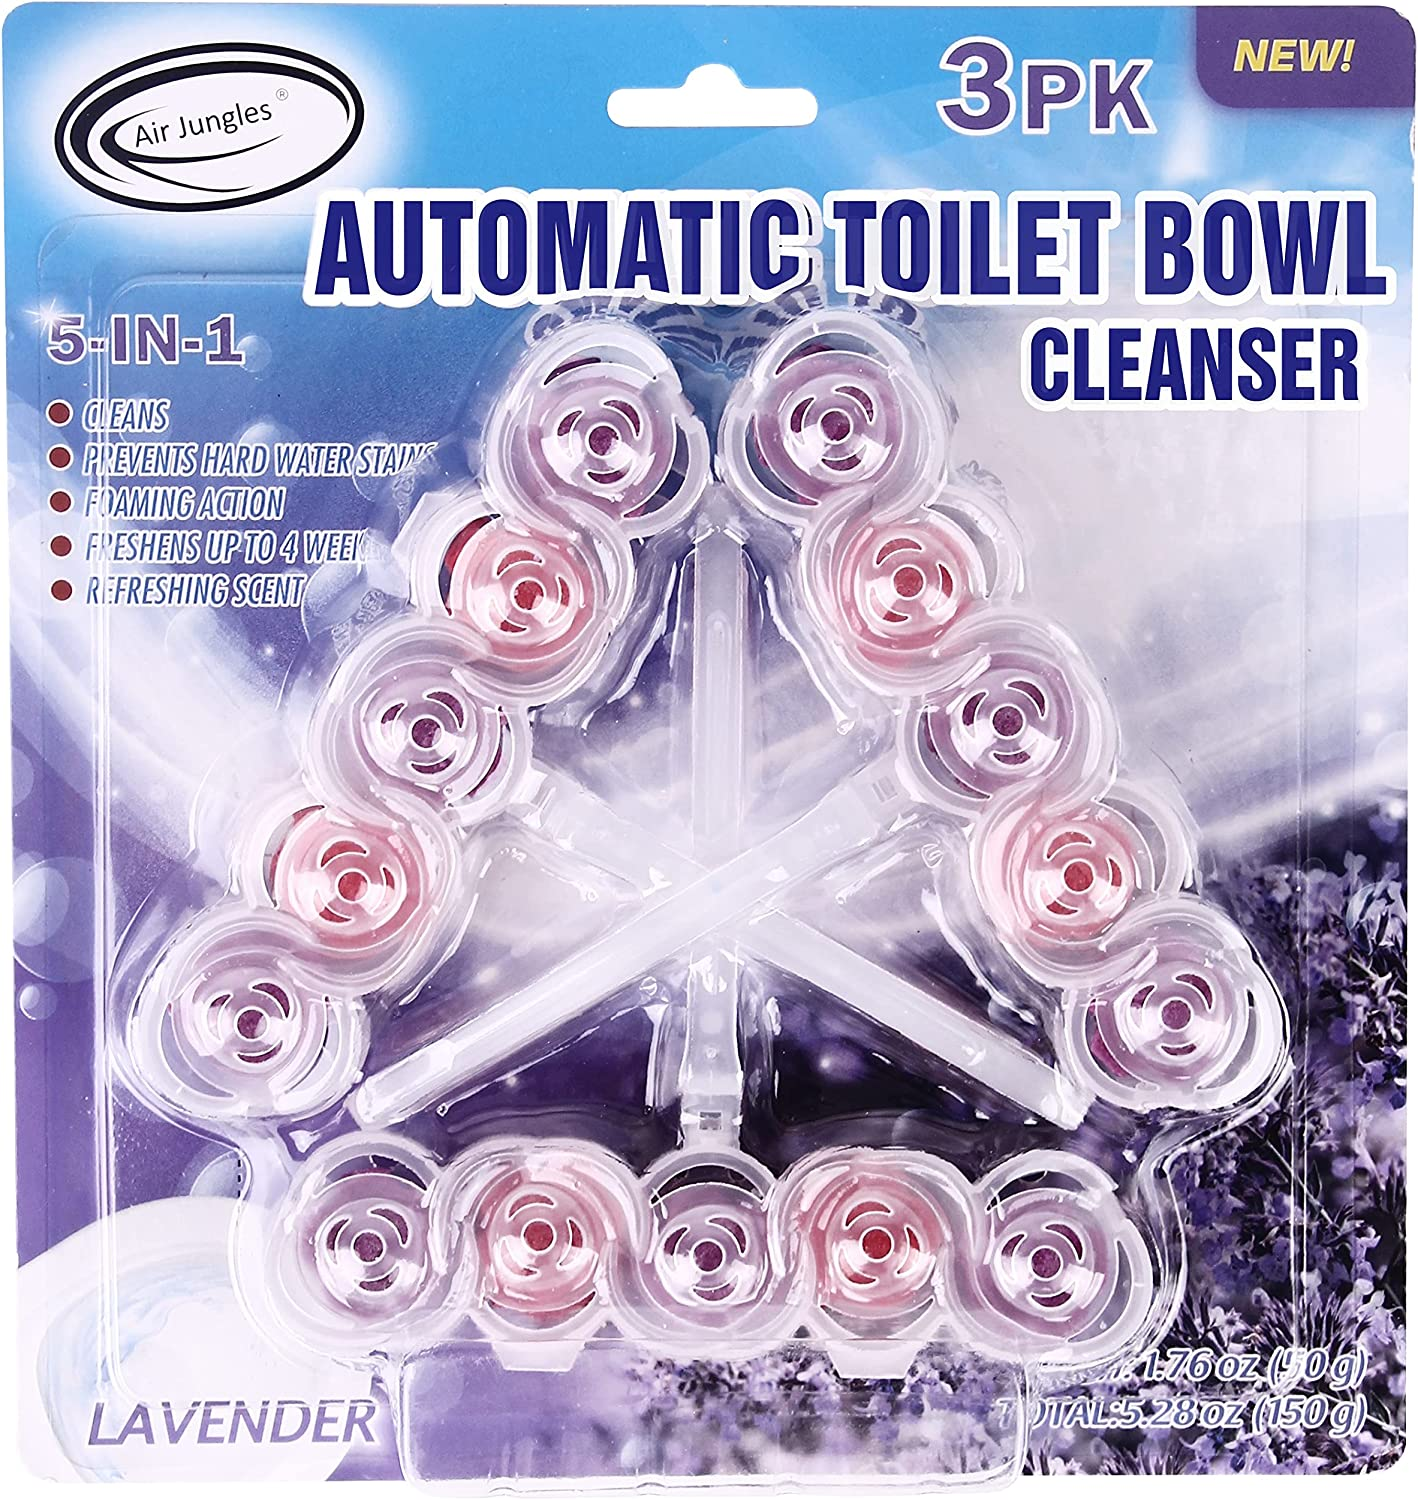 Air Jungles 5-in-1 Automatic Toilet S Hanger Clear Lavender Rim Brand Cheap Sale Venue Popular products